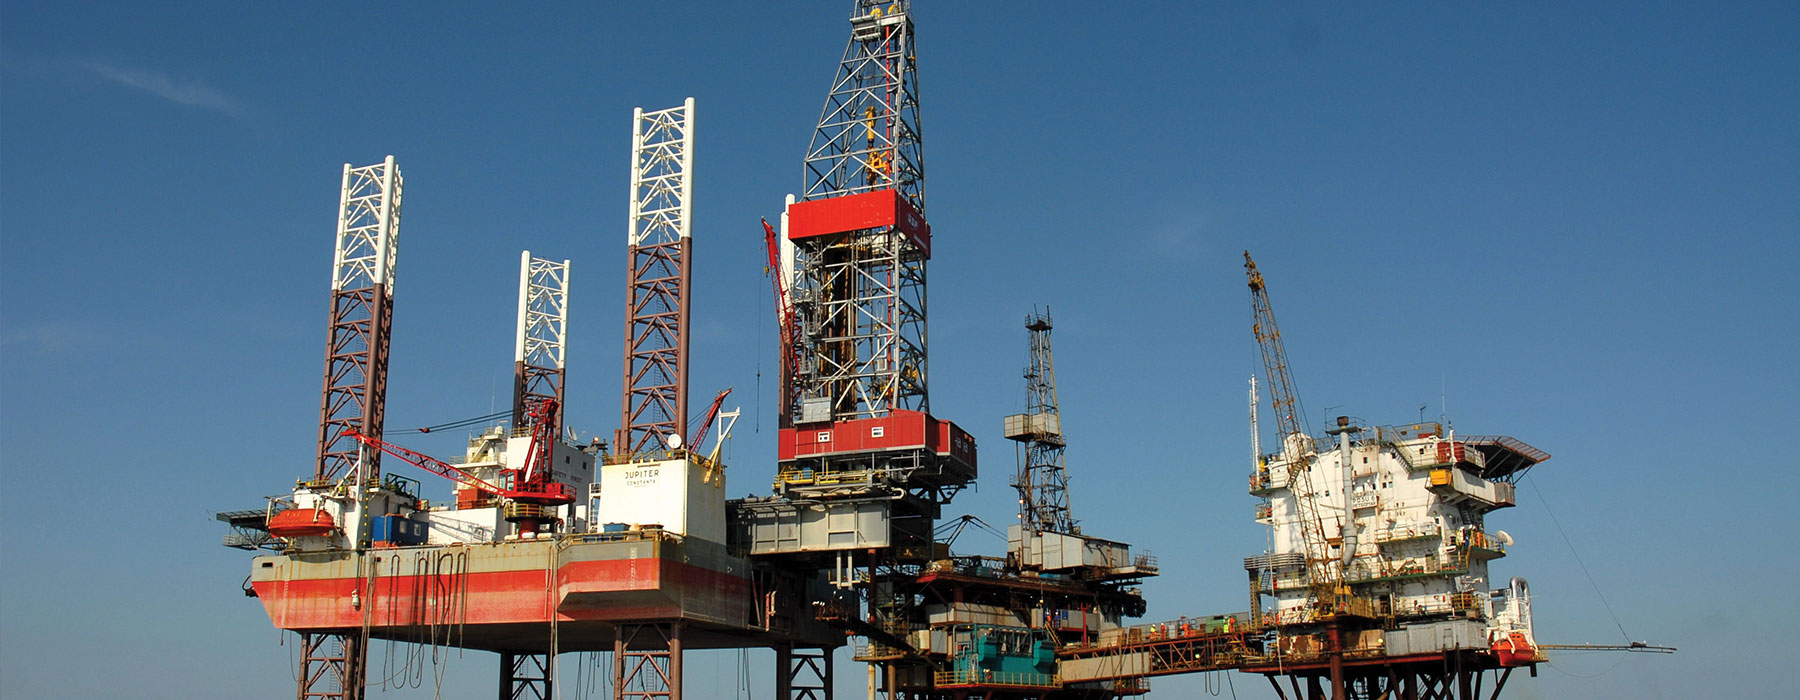 offshore hookup and construction services i pvt ltd